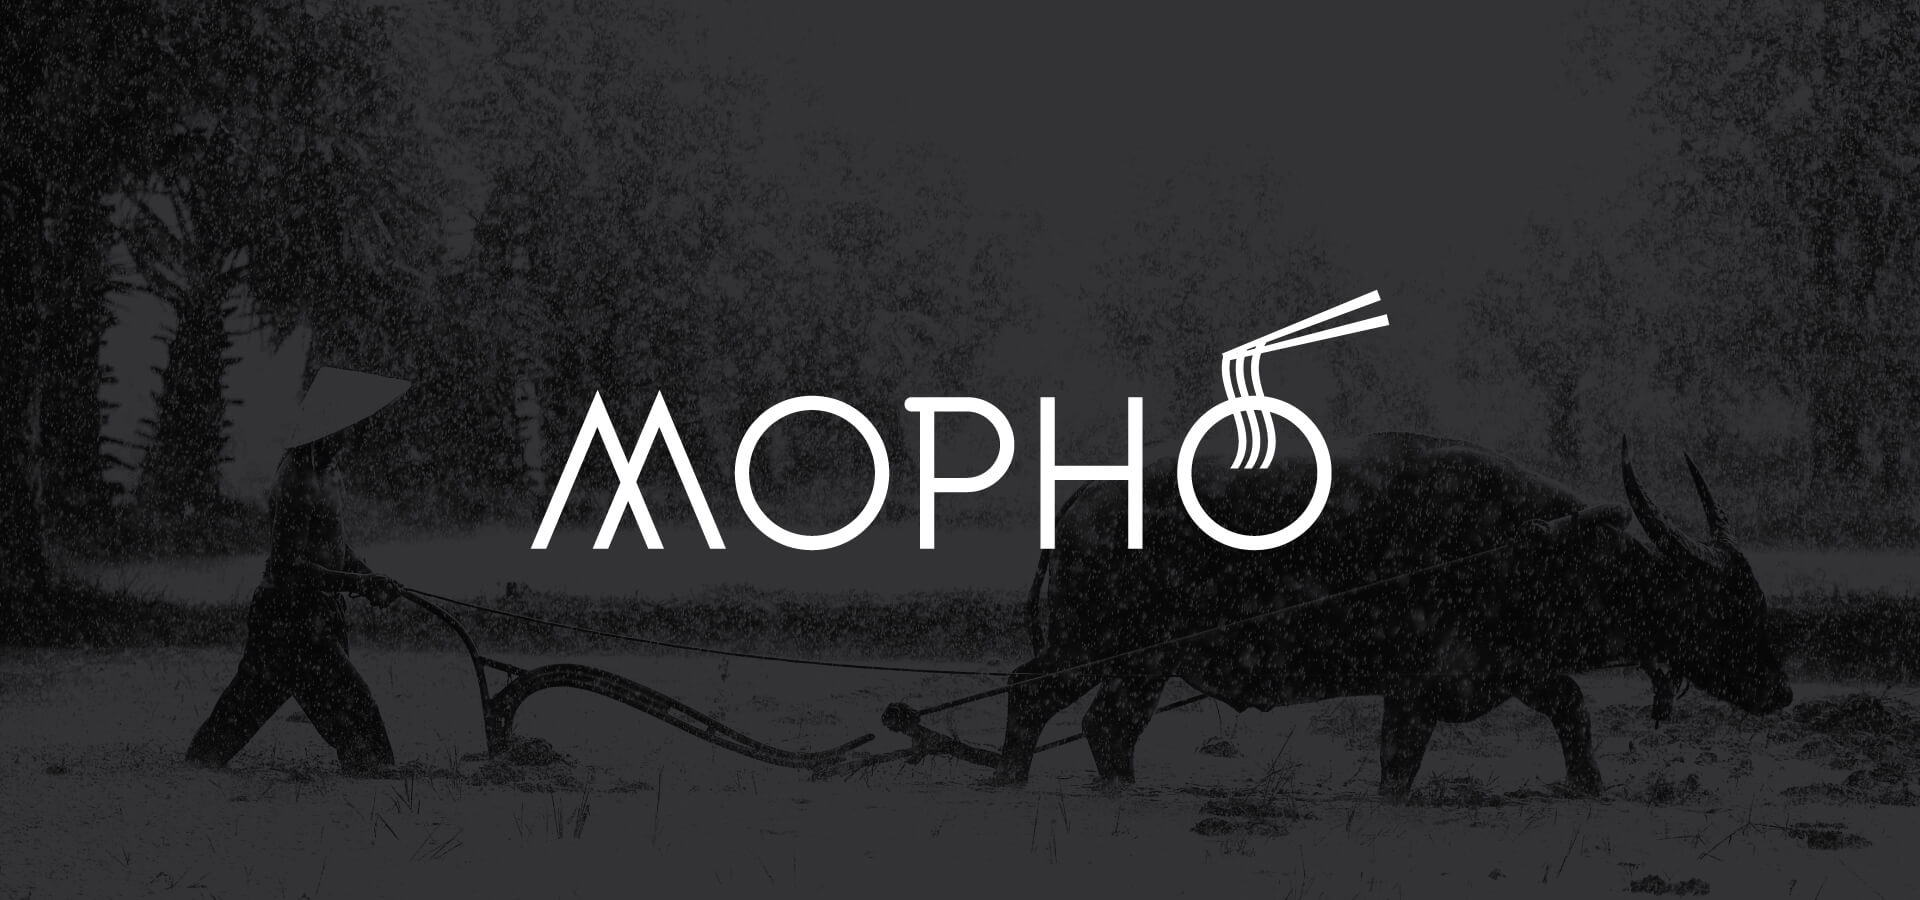 Mopho Logo and brand identity